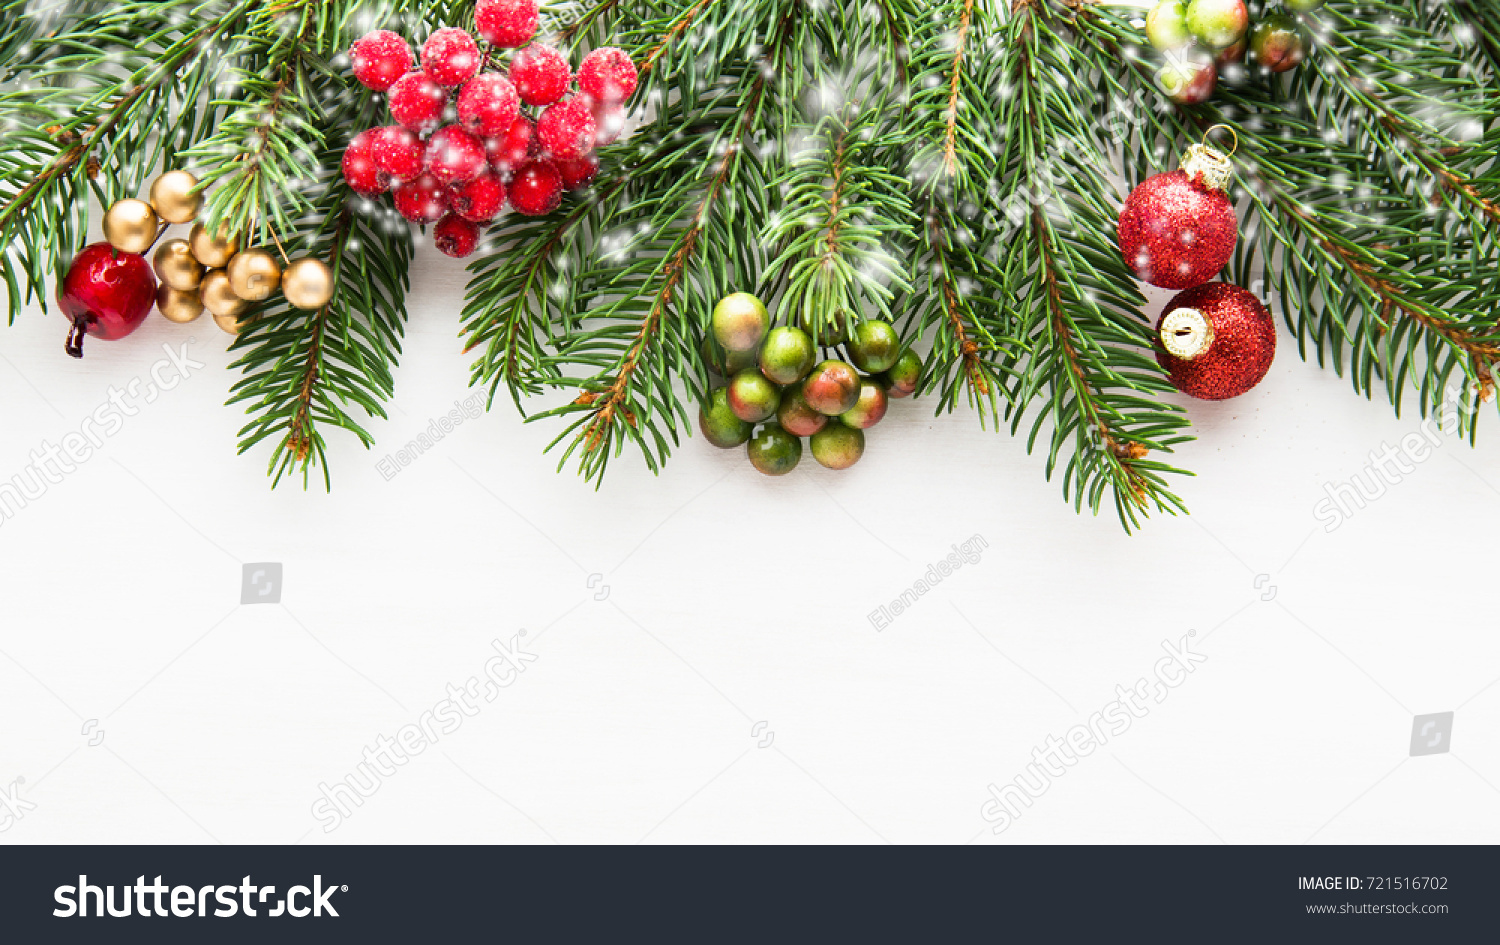 Christmas Background Xmas Tree Red Berries Stock Photo Edit Now 721516702